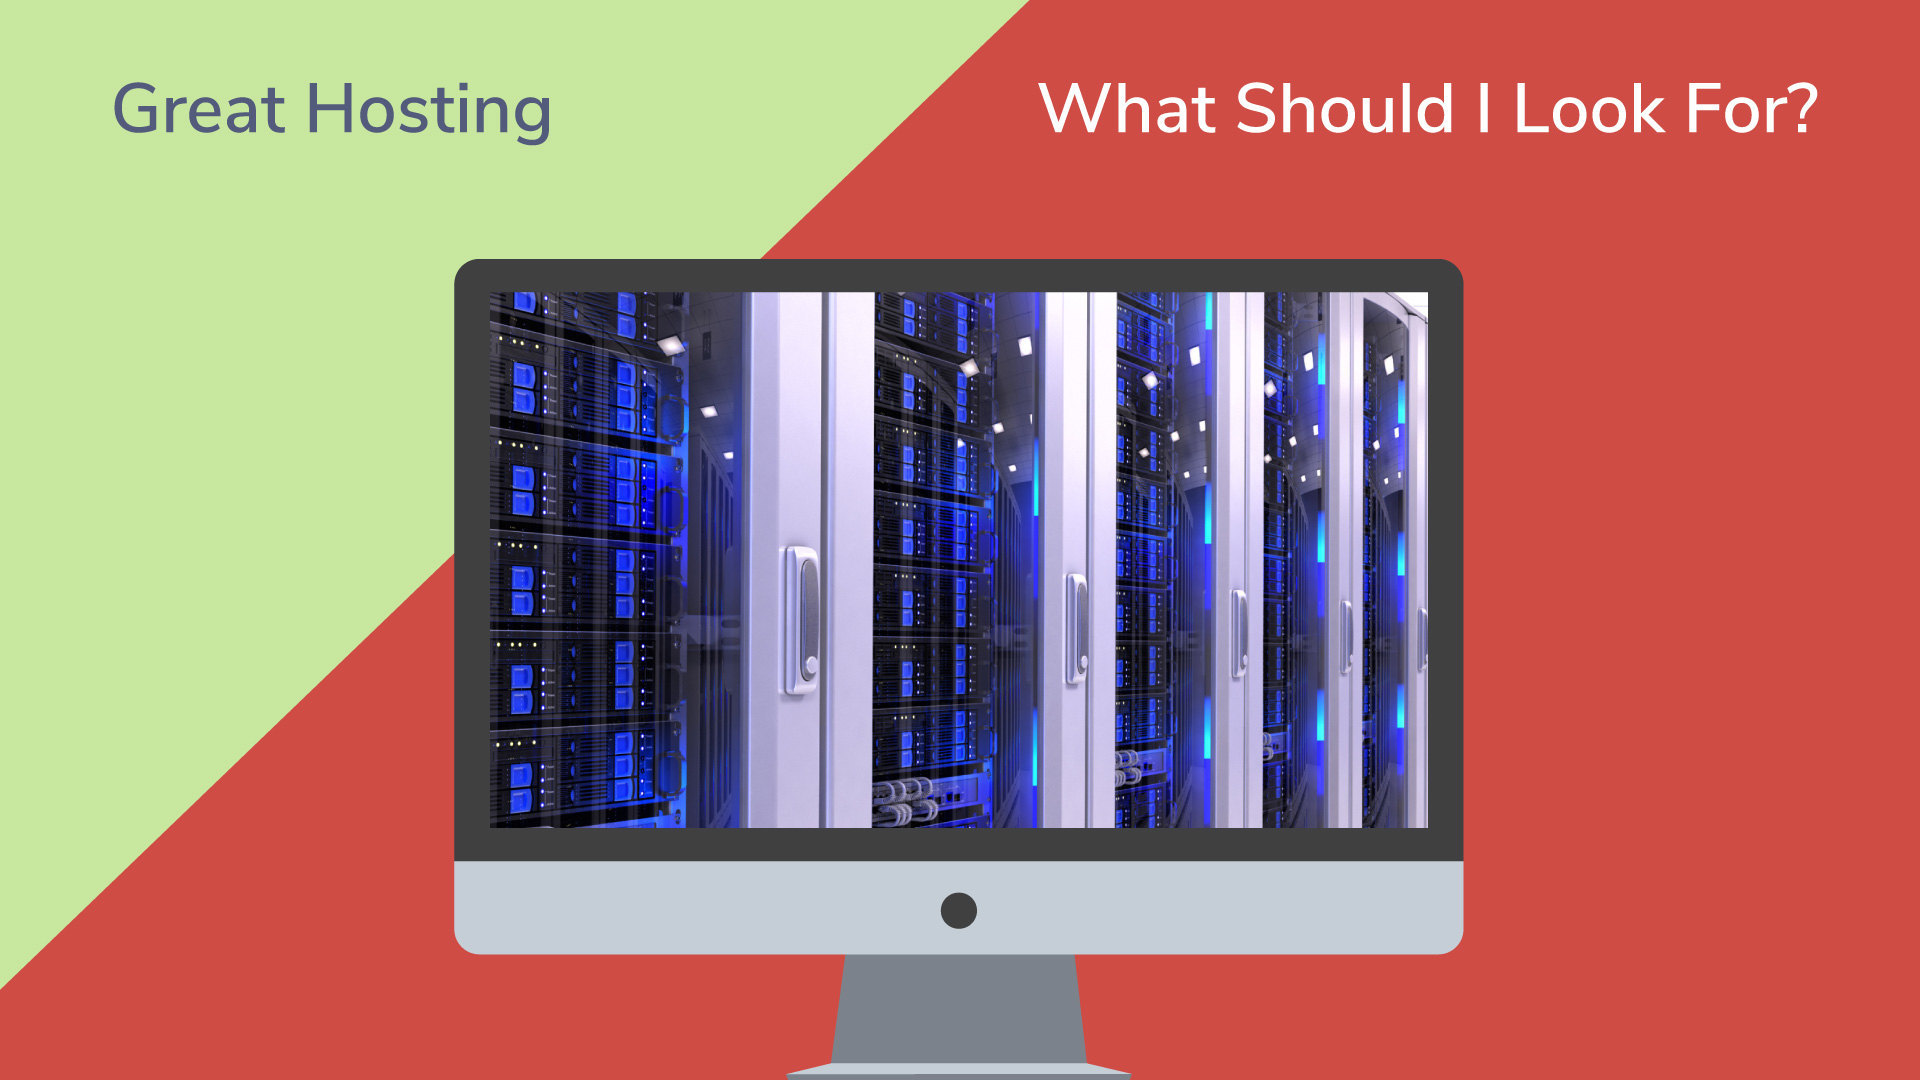 What to look for in a hosting company